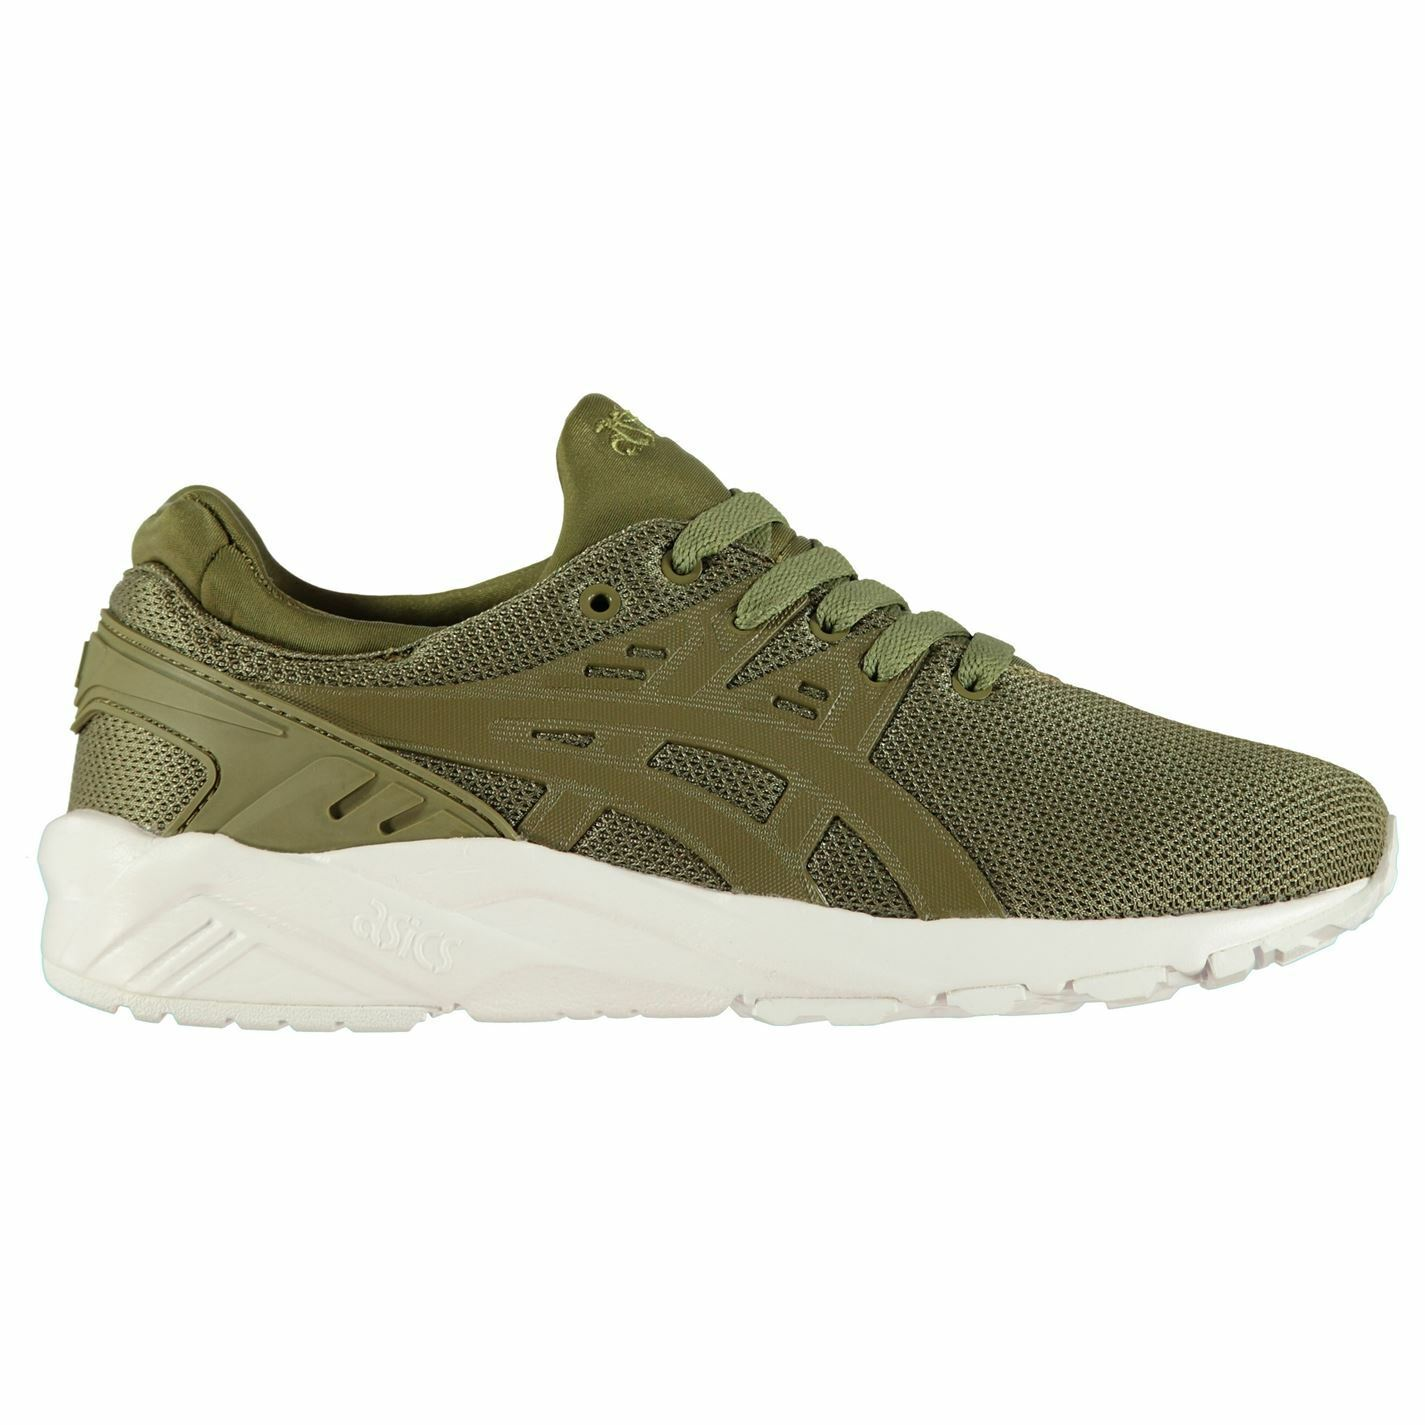 Asics Mens Gel Kayano Evo Classic Trainers Low Lace Up Sports Shoes Mesh Upper